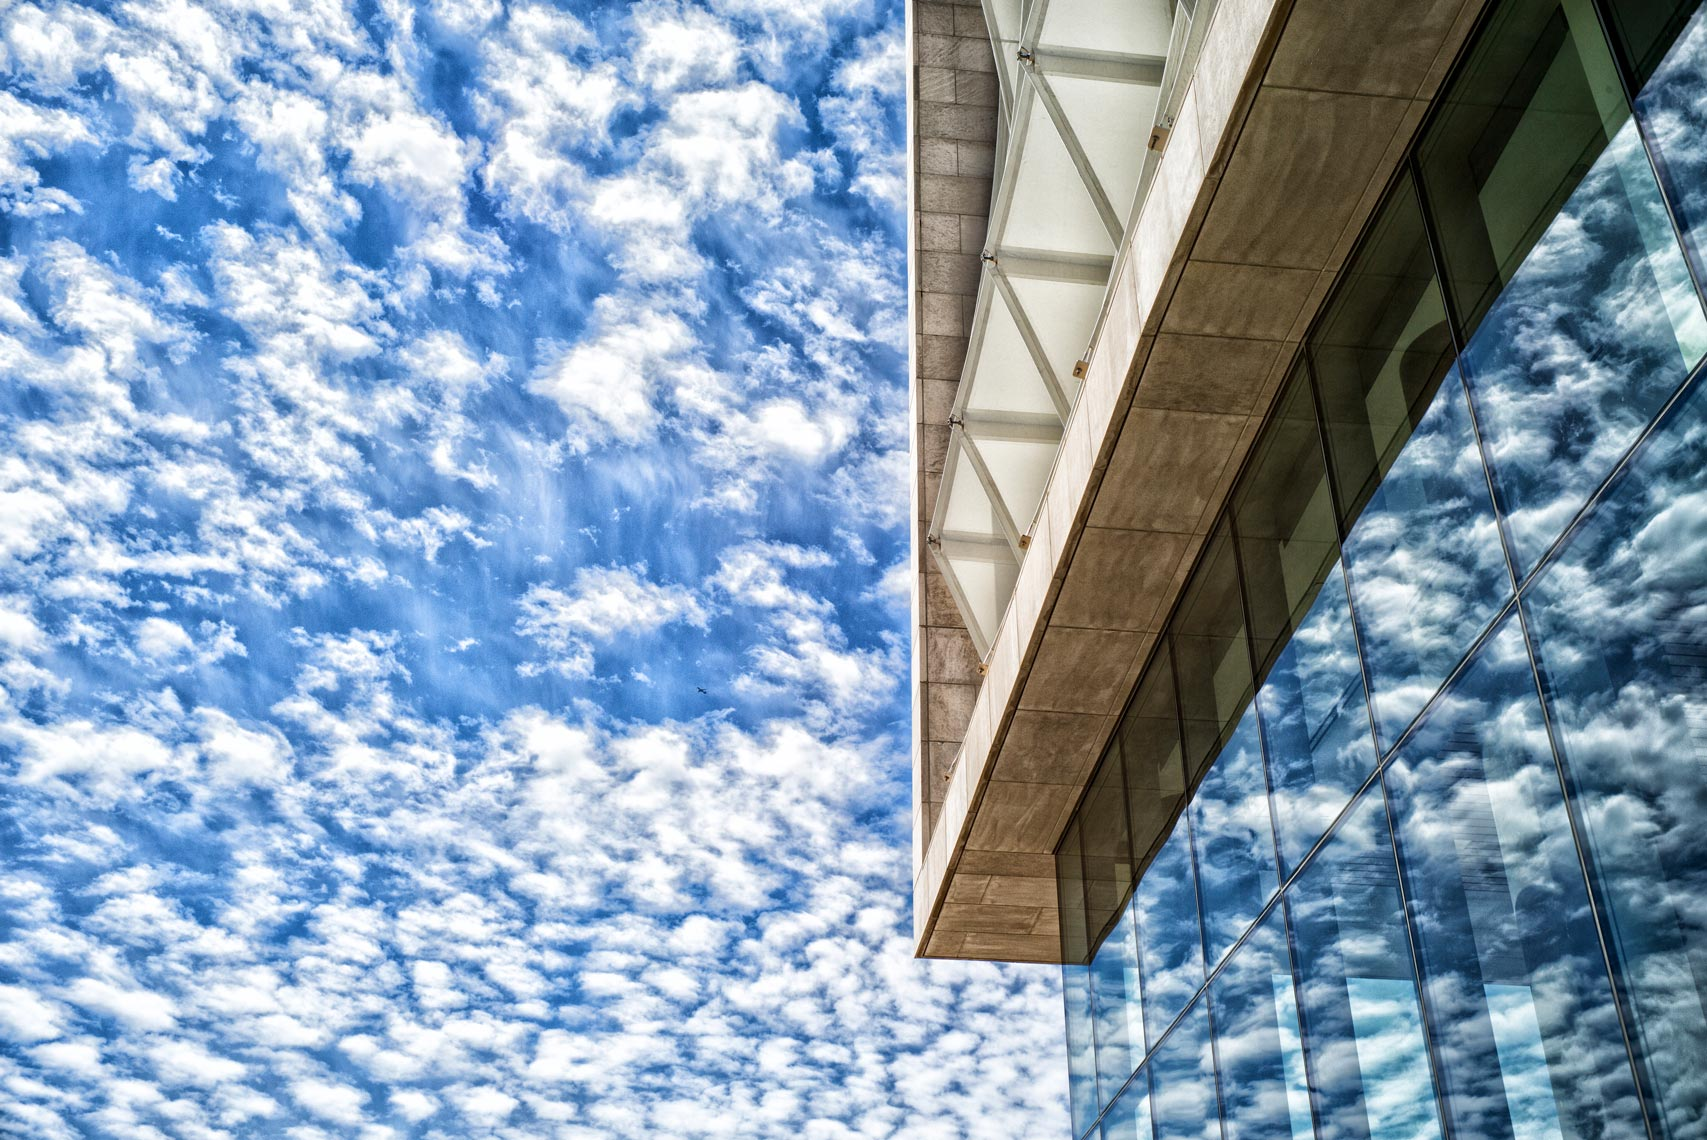 Segal Visitors Center cloud reflection | Chicago Commercial Photographer Jim Prisching